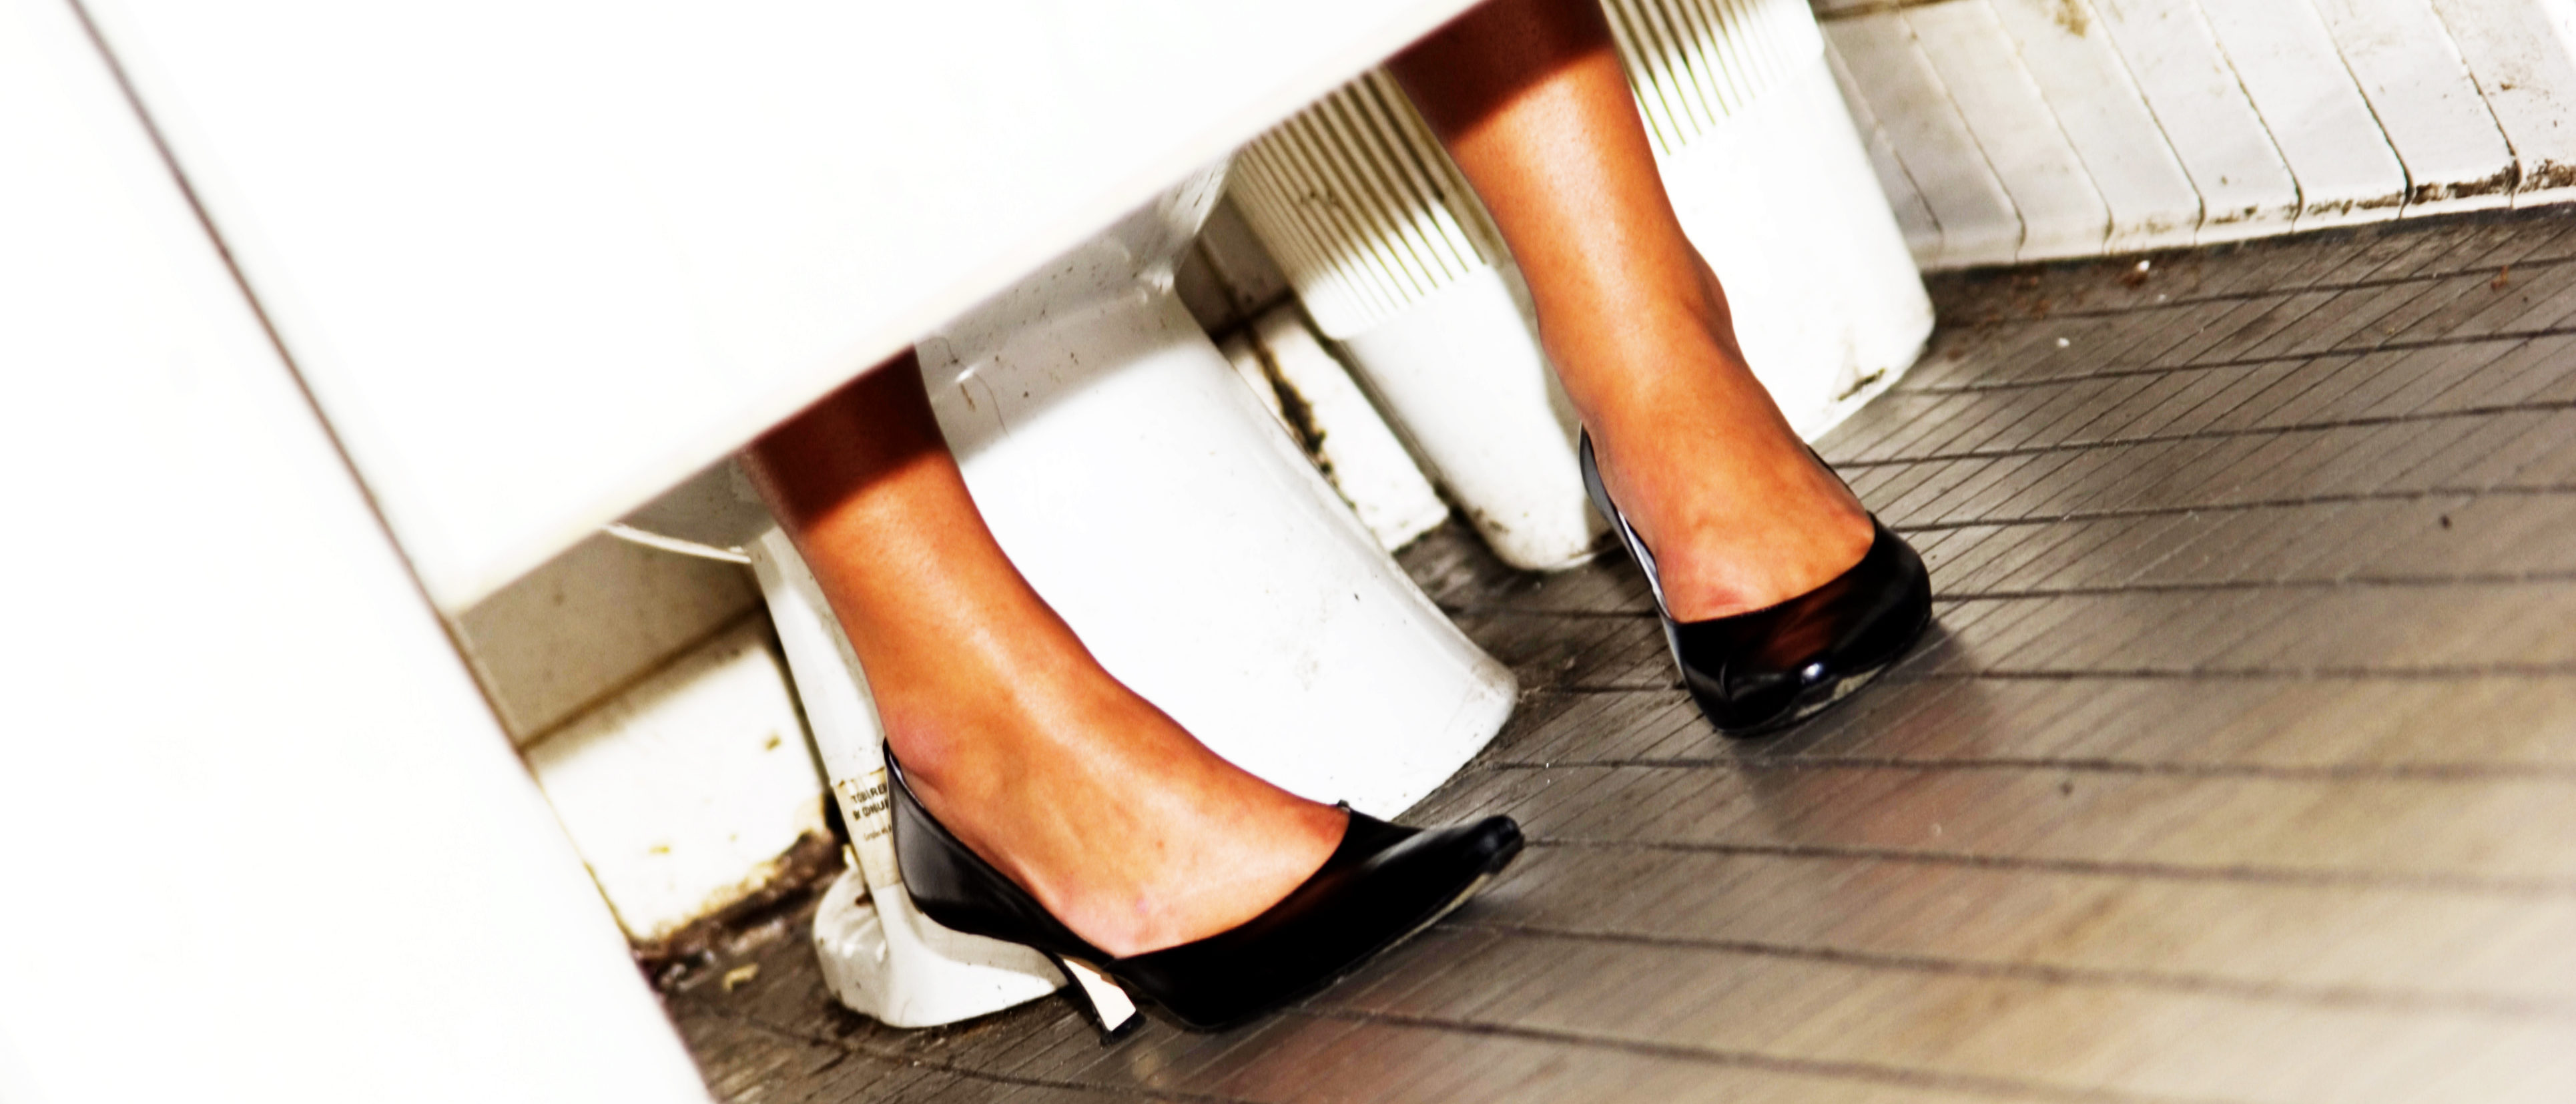 Girls's feet peeping out of bathroom stall (Shutterstock/GWImages)